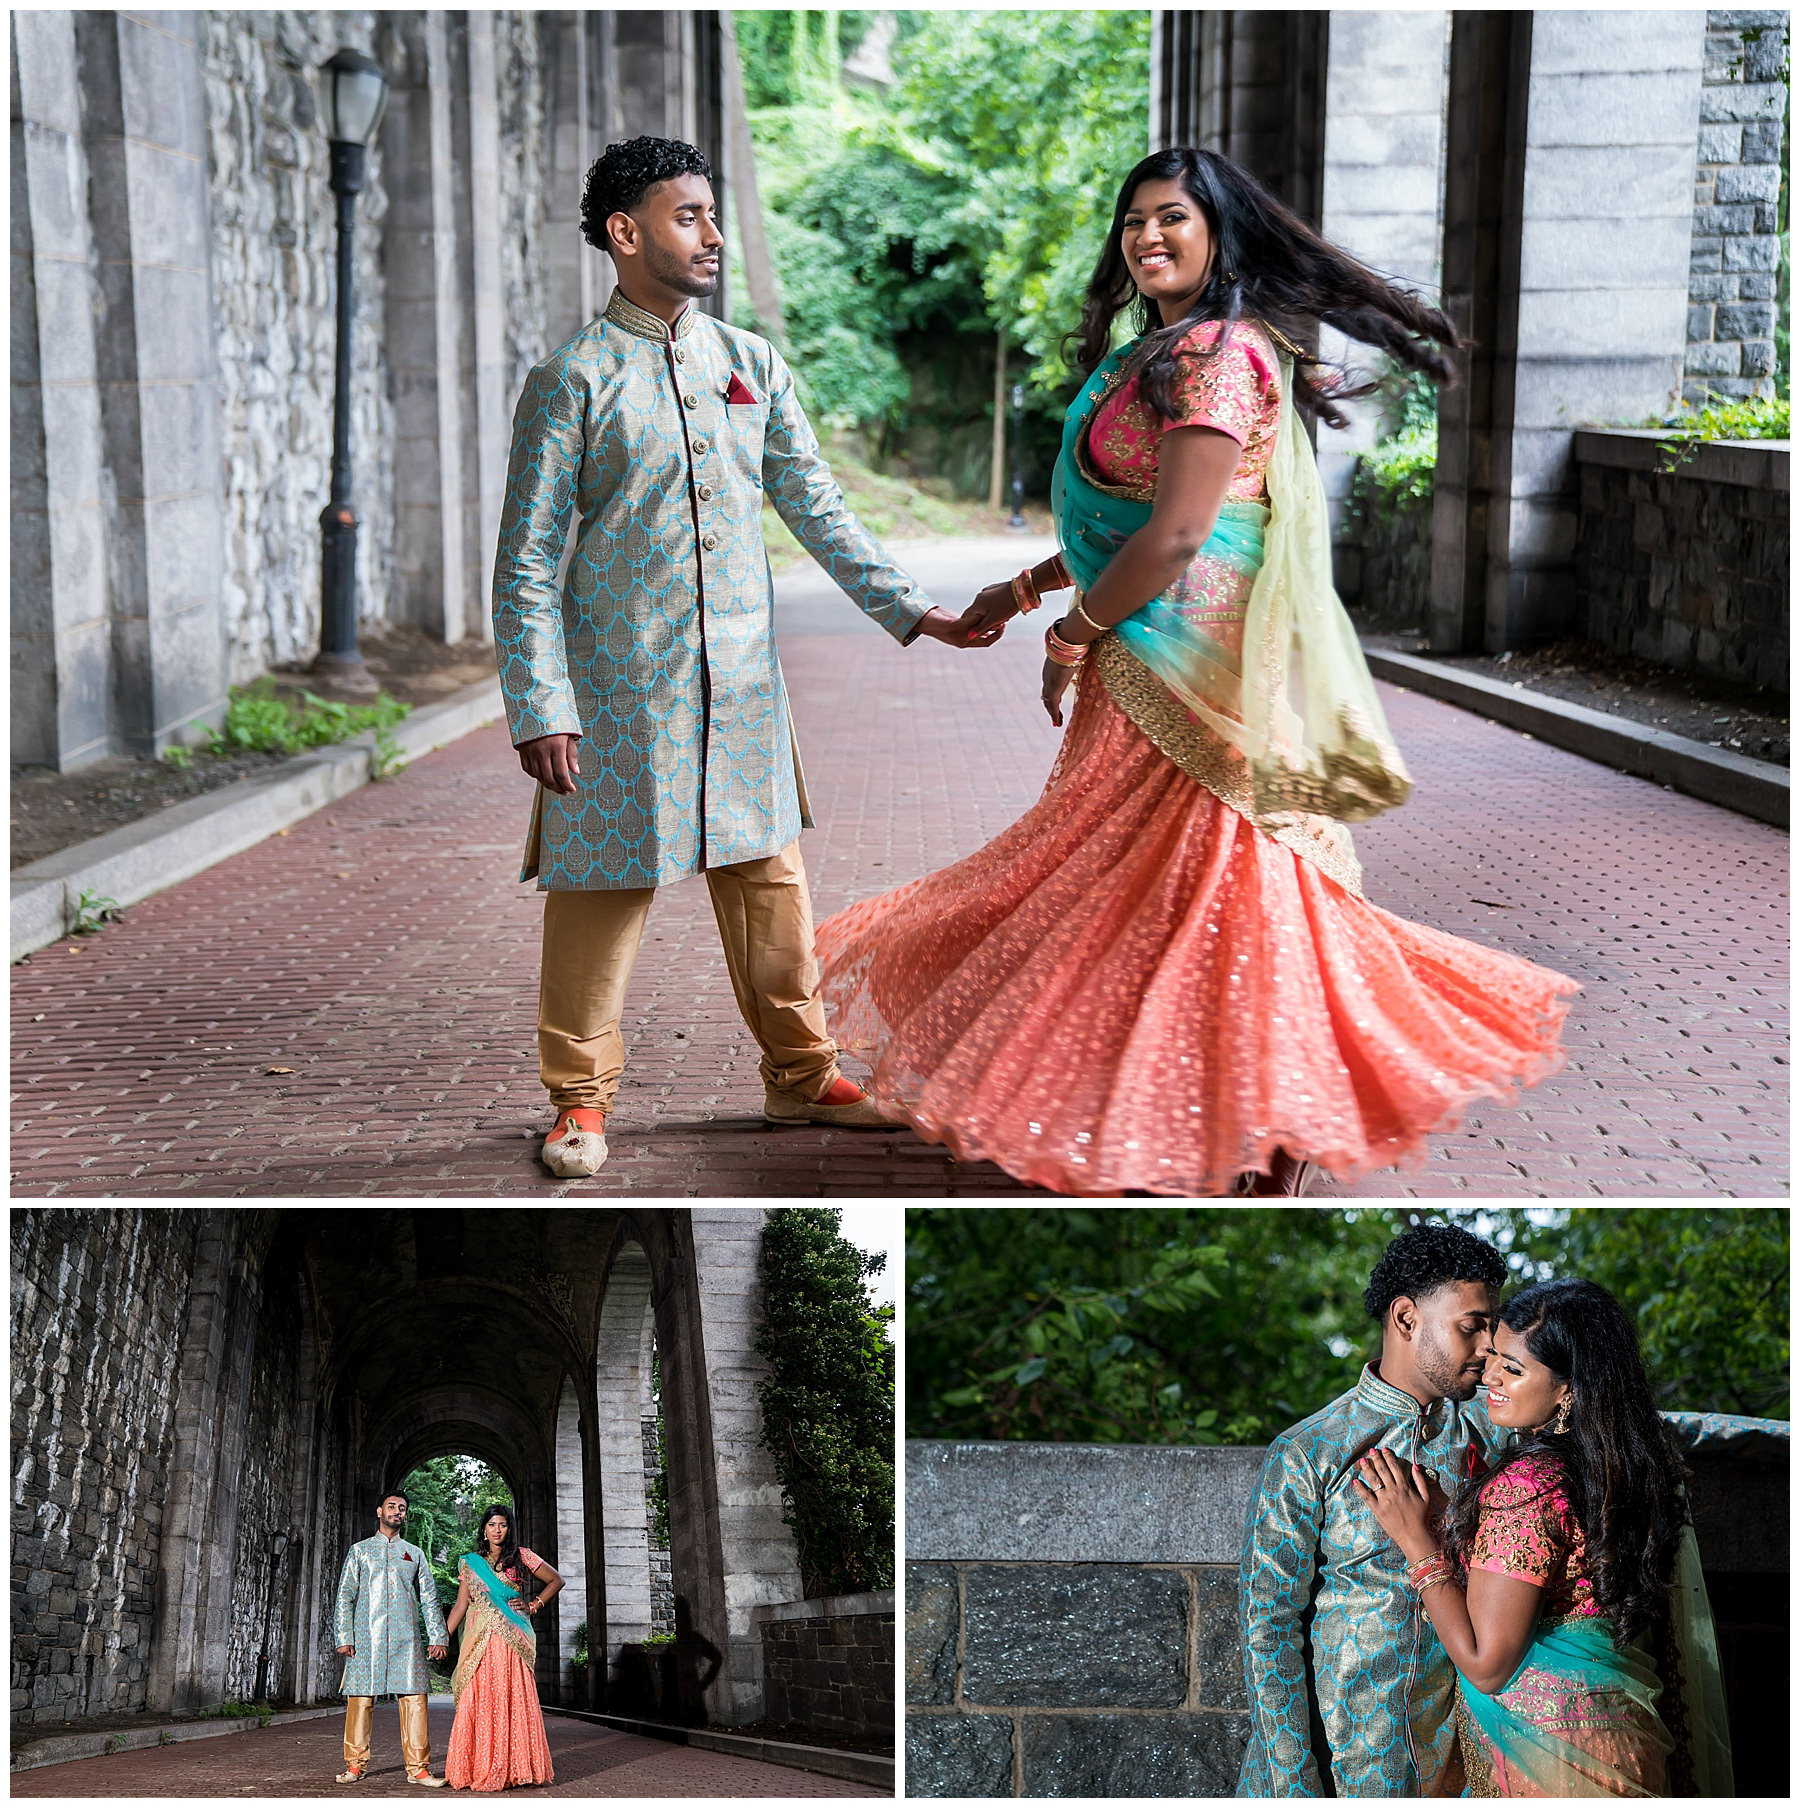 fort-tysons-park-new-york-engagement-shoot-sibyl-jithin-11.jpg